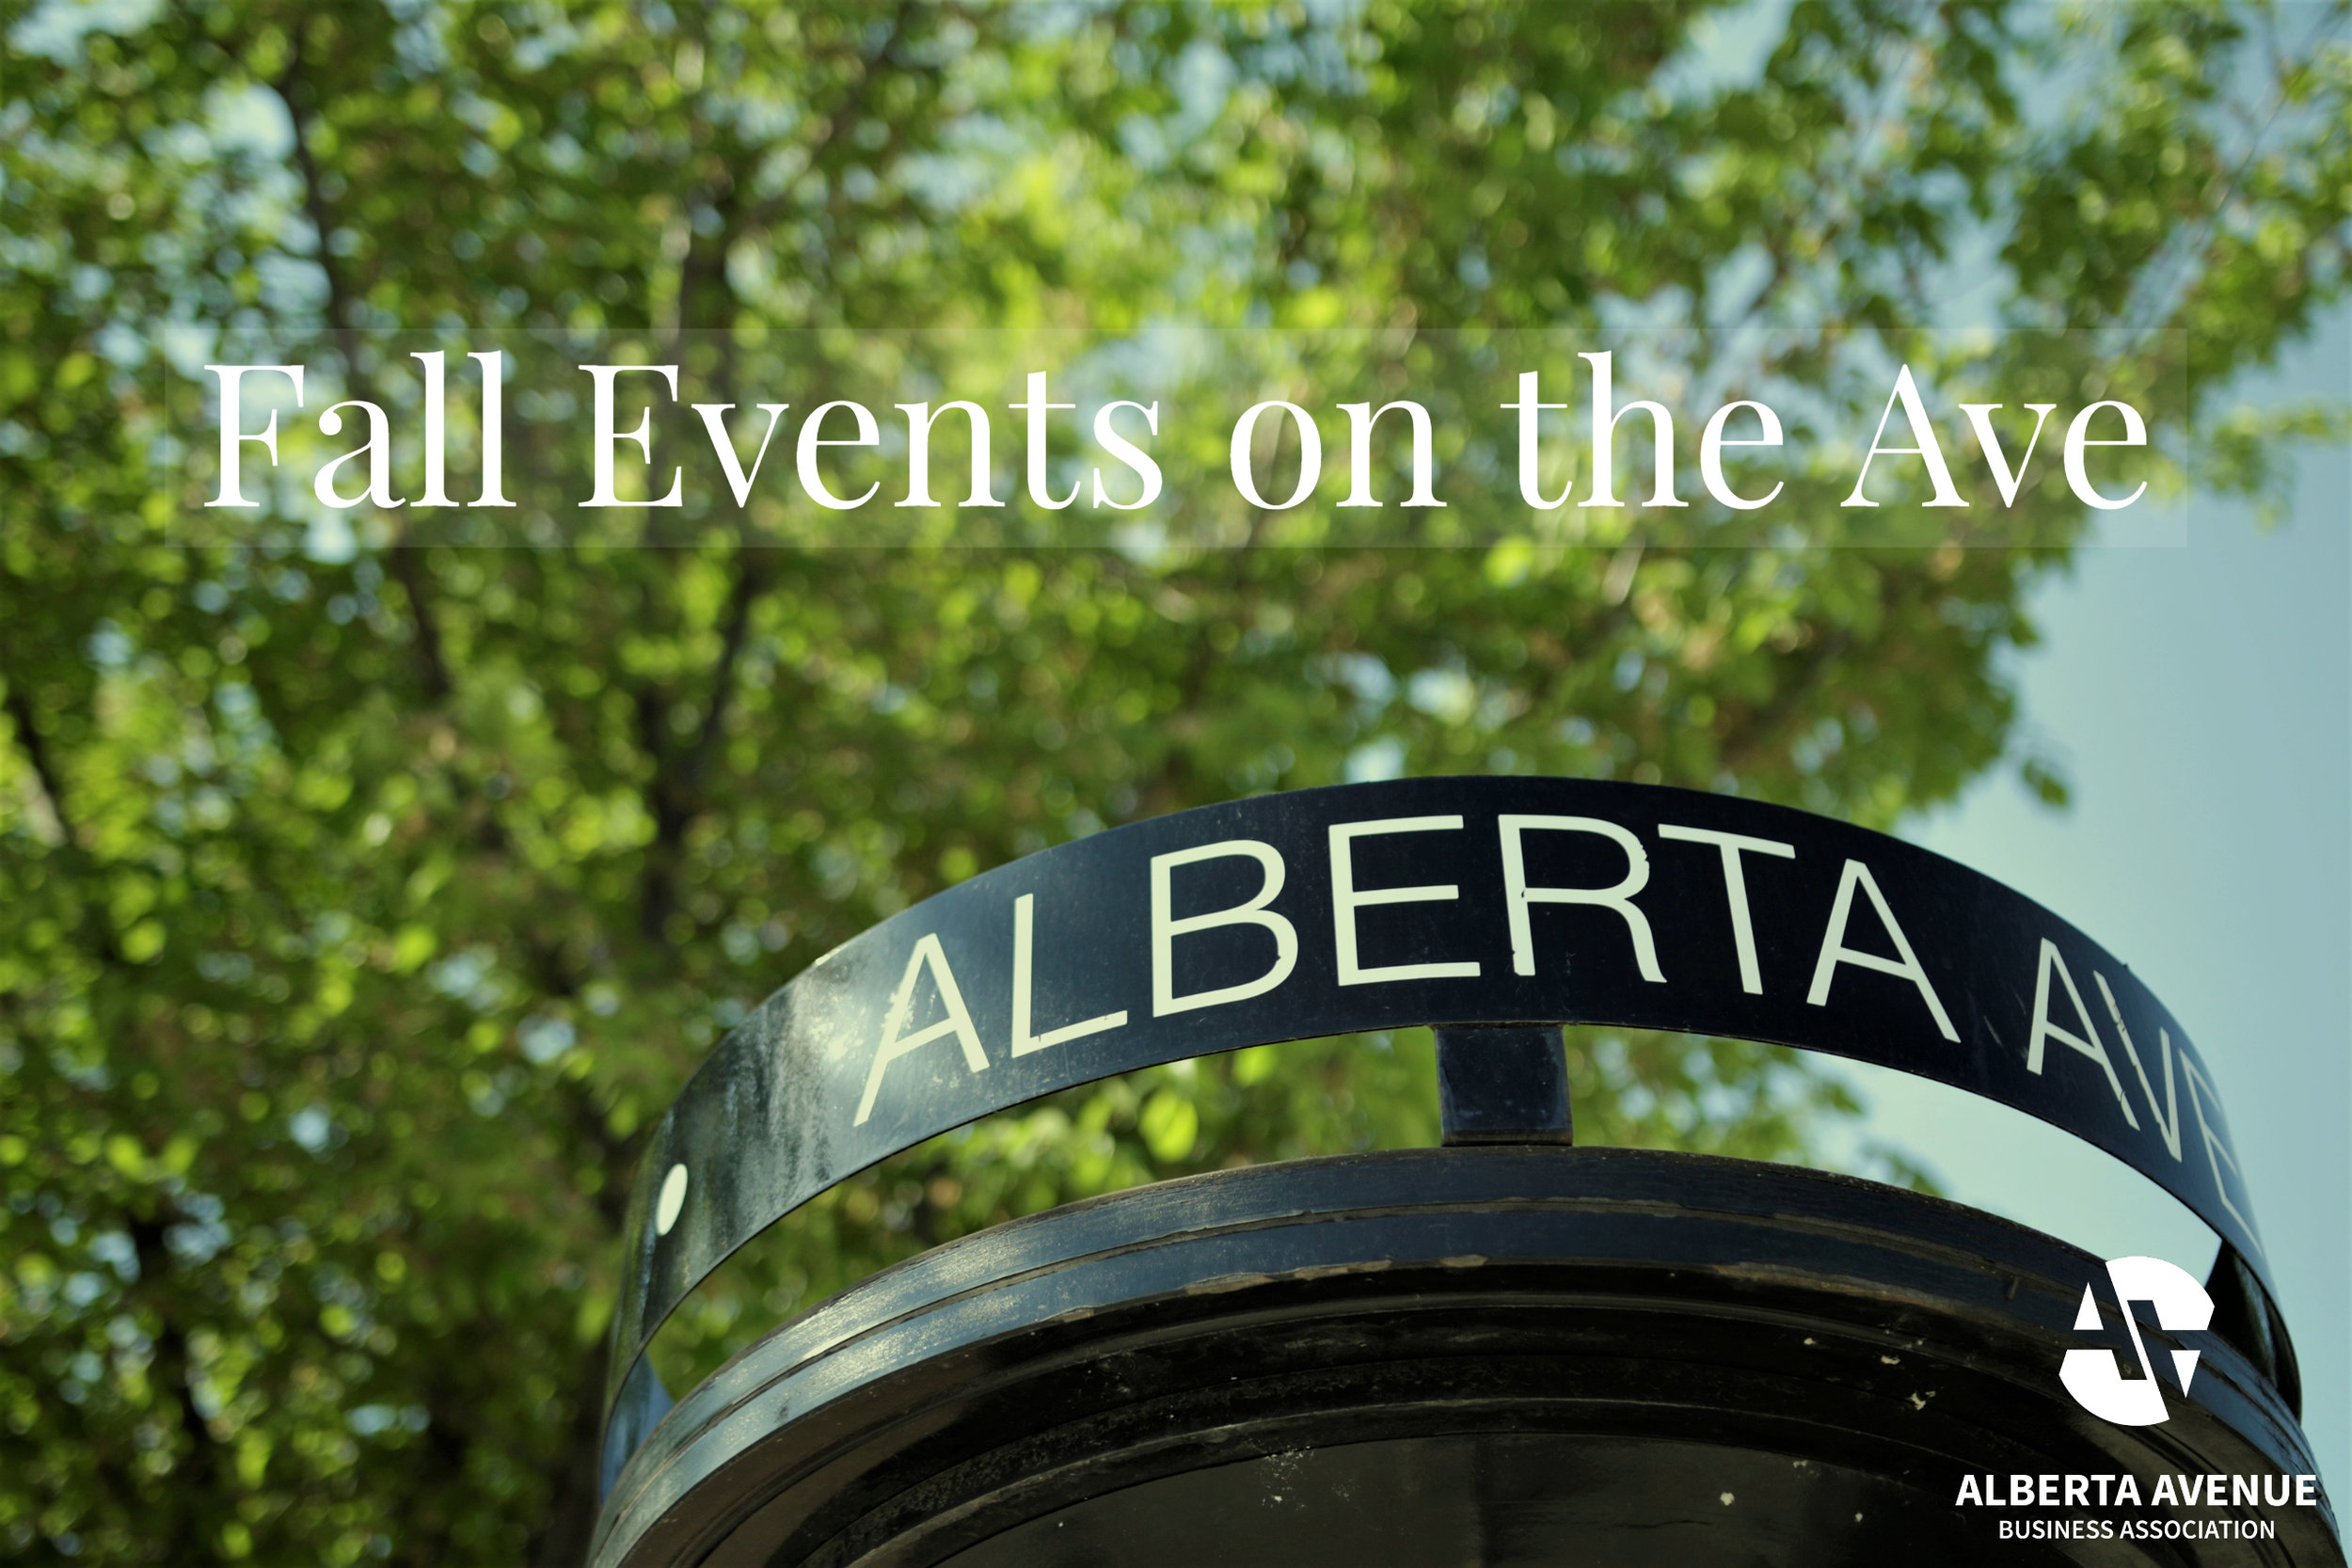 Backpacks and leaves on the ground...must be Fall!  The air is crisp and there is a whole slate of cool things to do coming up on Alberta Avenue. Put on your comfiest sweater and join us for some great times!